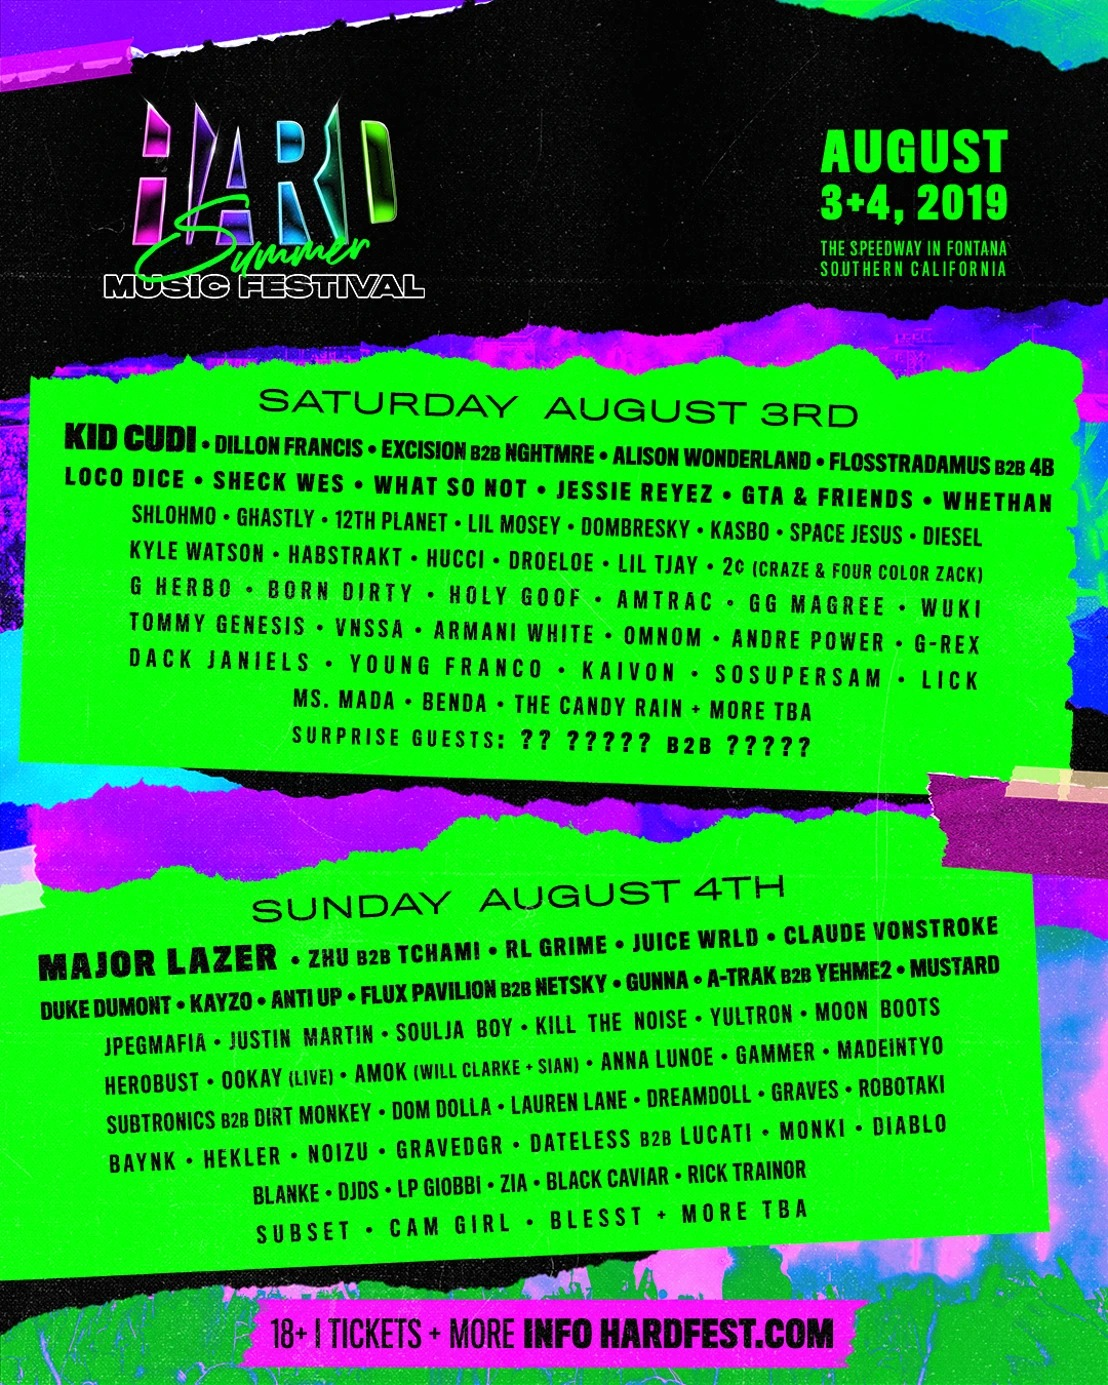 HARD Summer Music Festival 2019 Lineup